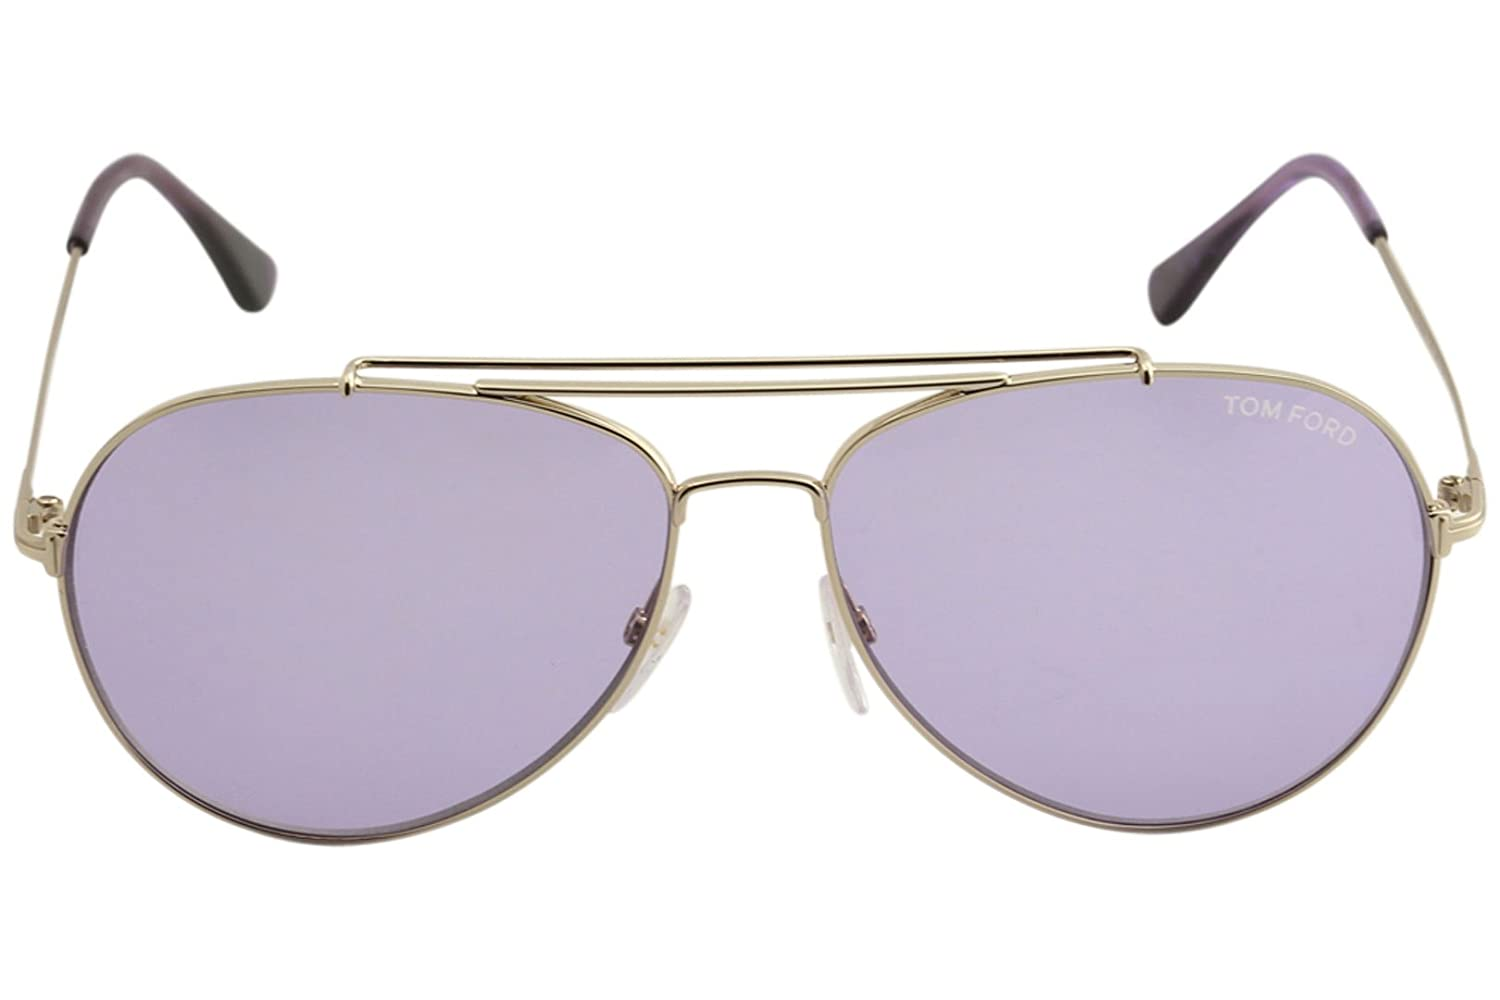 8ae5c0c28dce5 Sunglasses Tom Ford INDIANA TF 497 FT 28Y shiny rose gold   violet at  Amazon Men s Clothing store